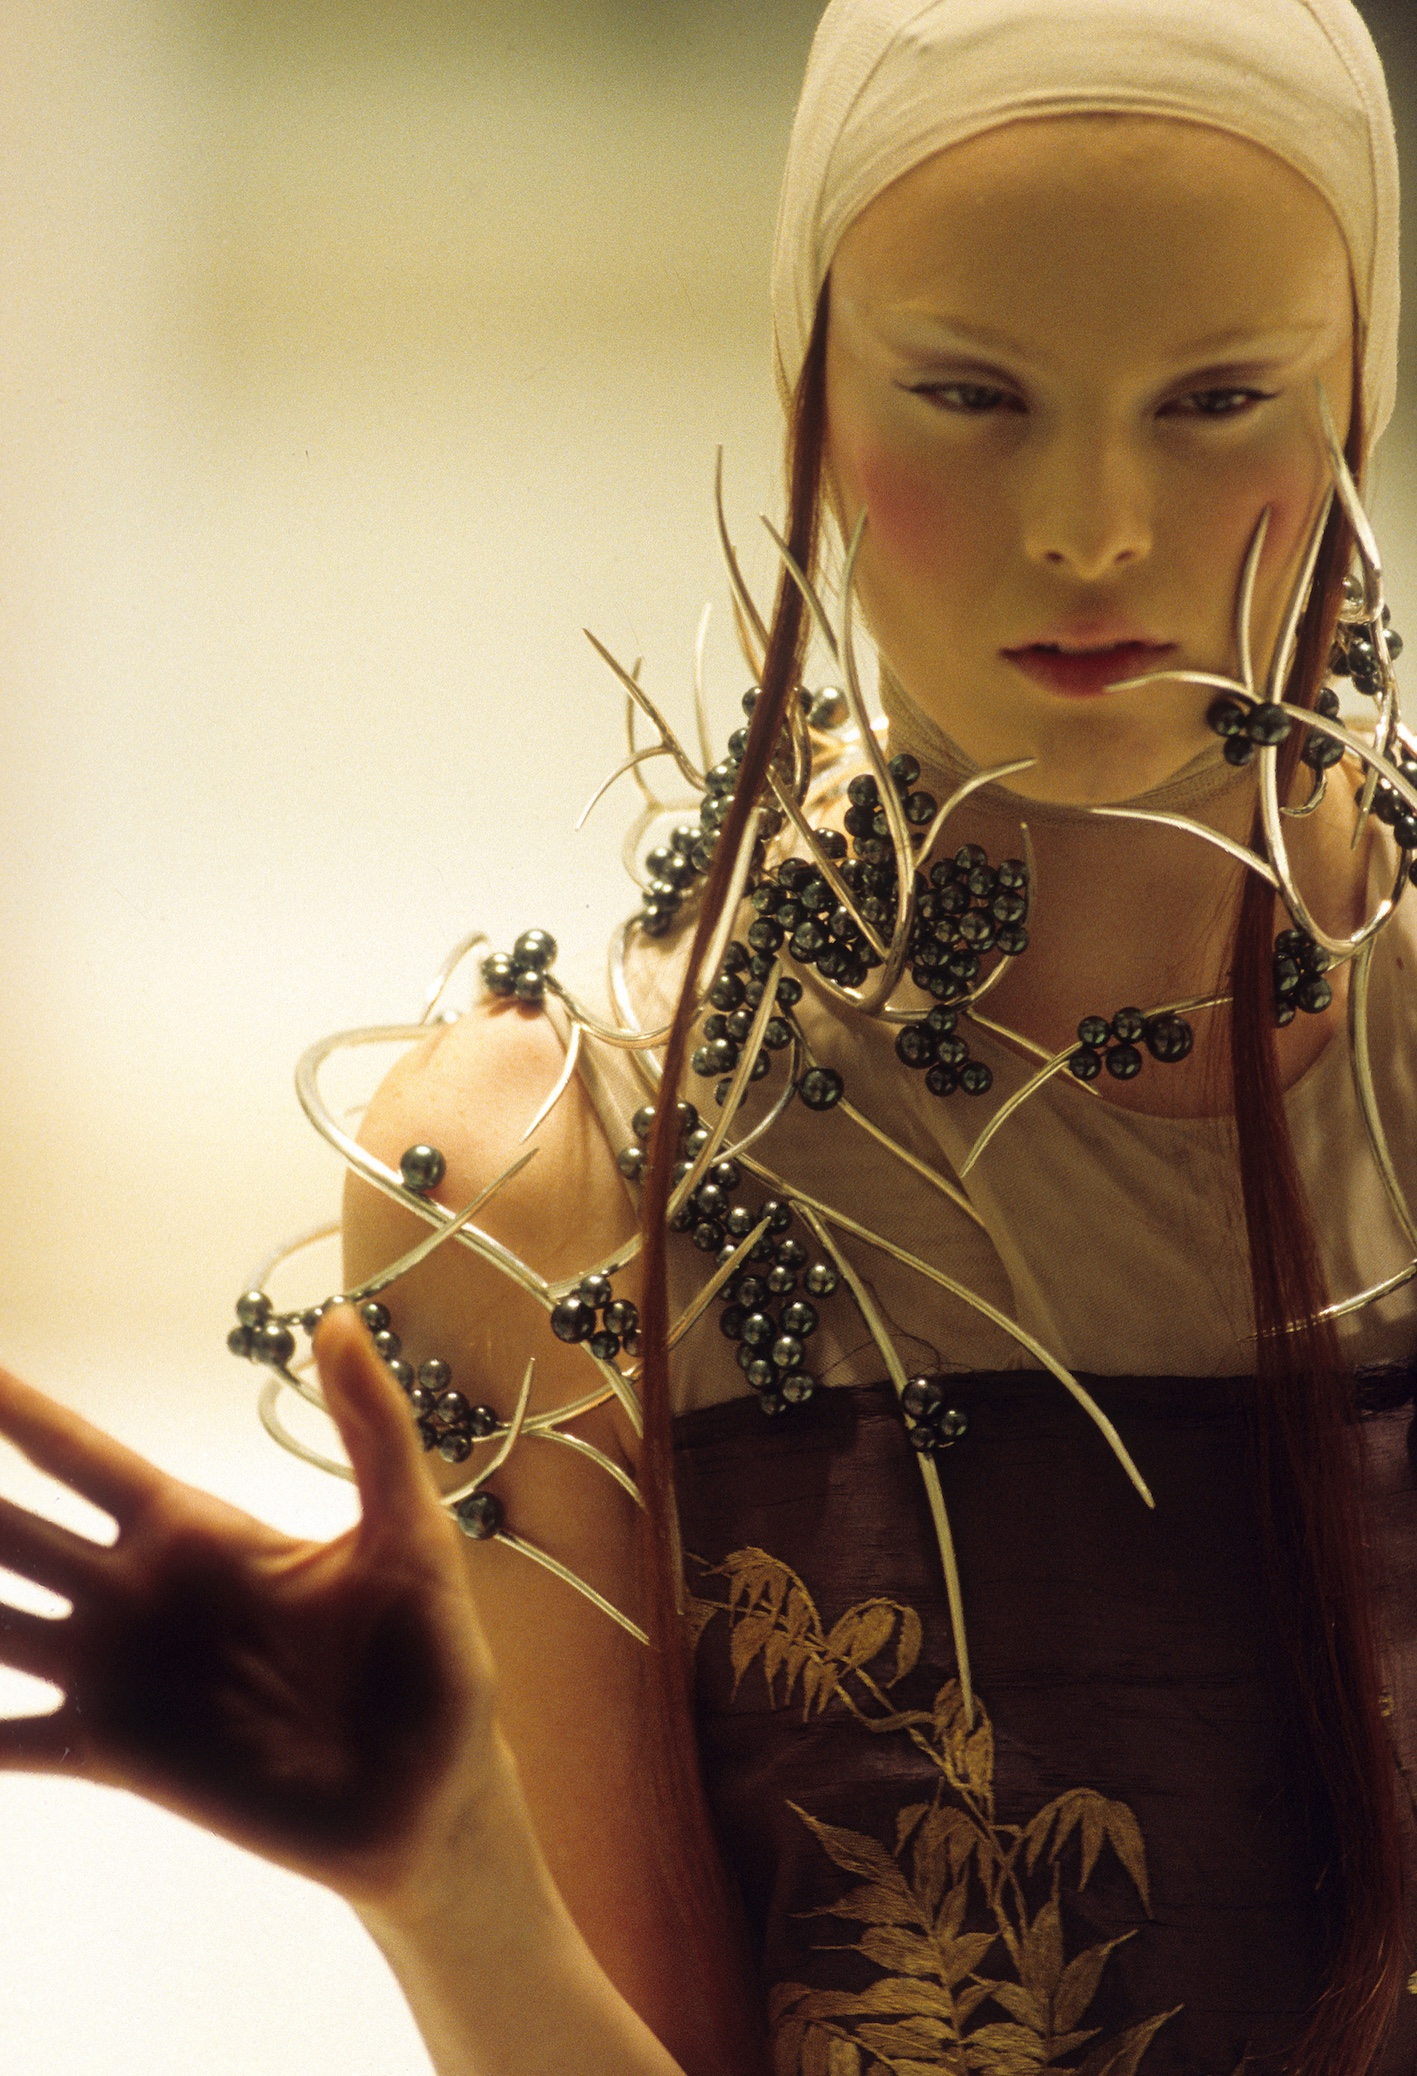 Shaun Leane per/for Alexander McQueen. Voss, S/S 2001. Photo: © Anthea Simms.